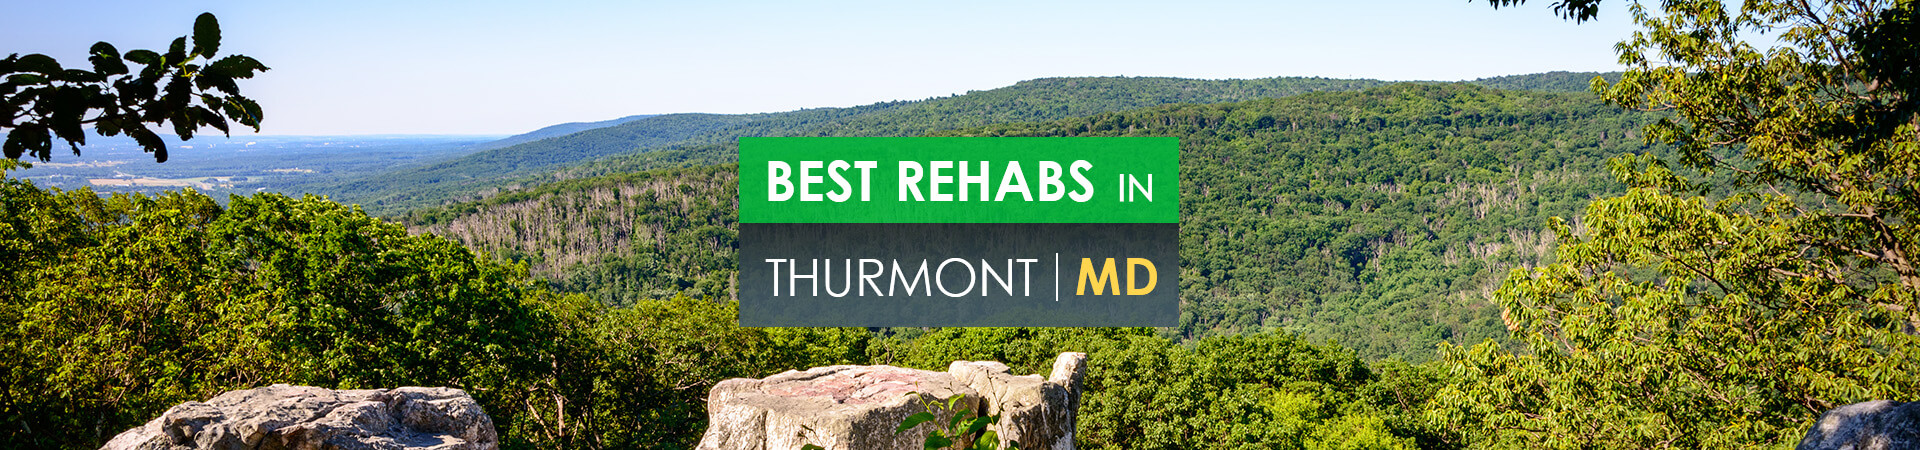 Best rehabs in Thurmont, MD